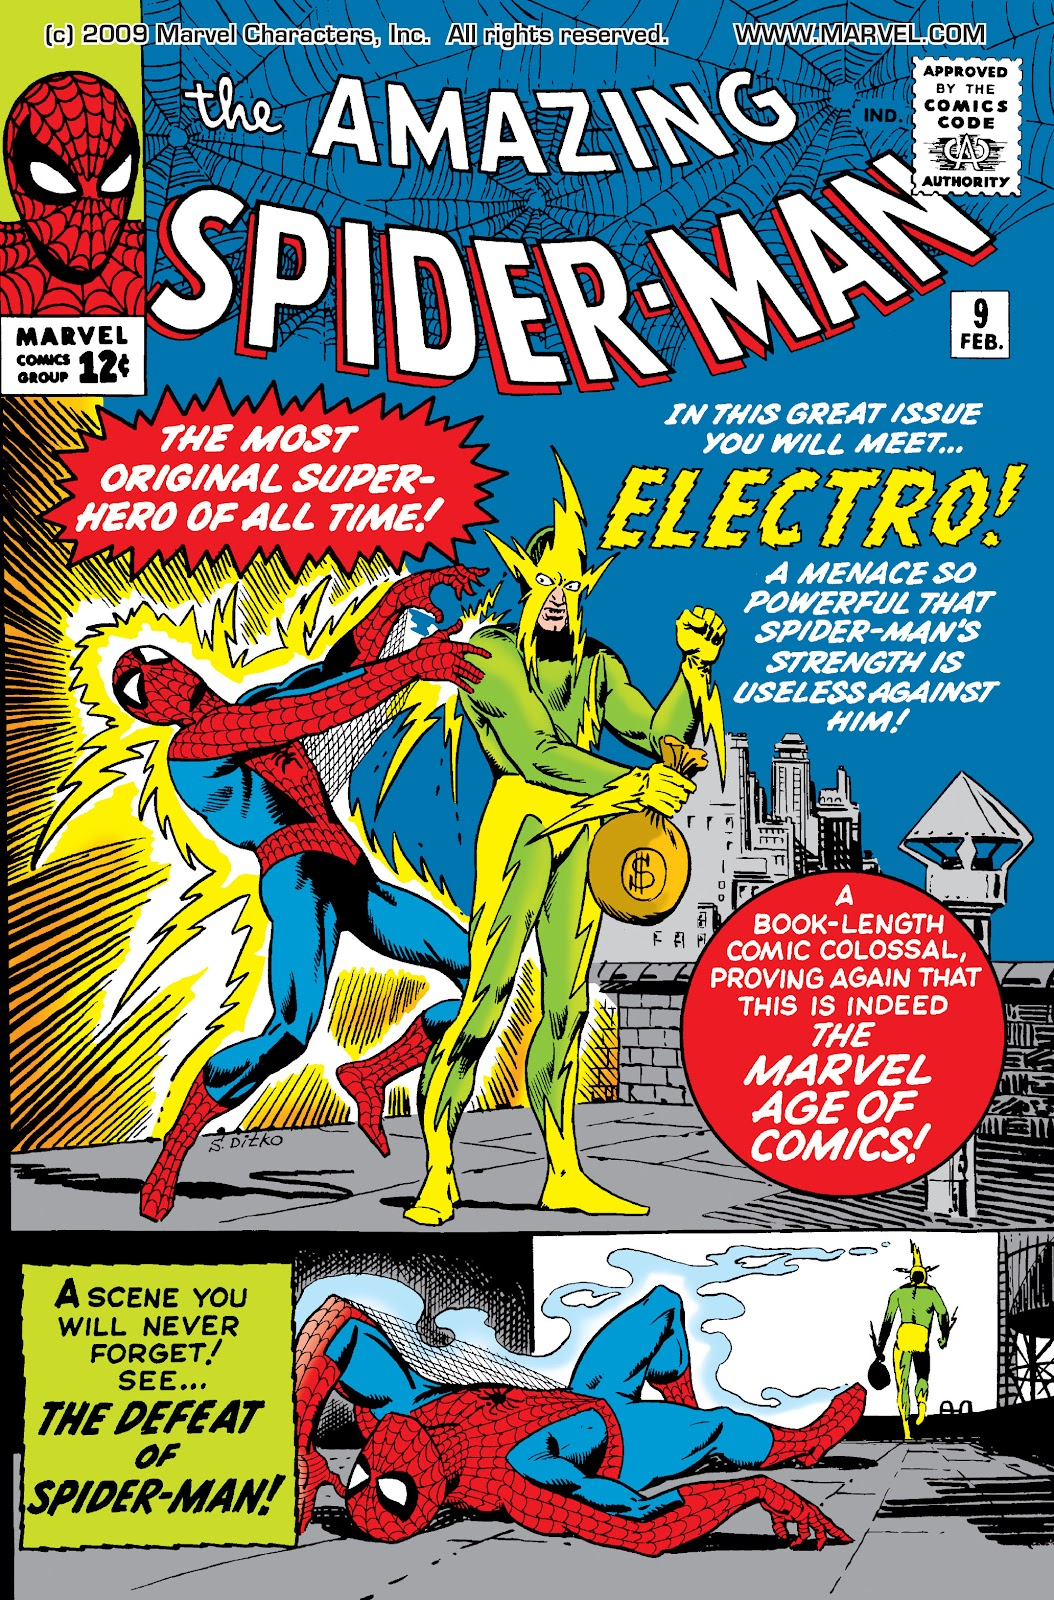 The Amazing Spider-Man (1963) 9 Page 1